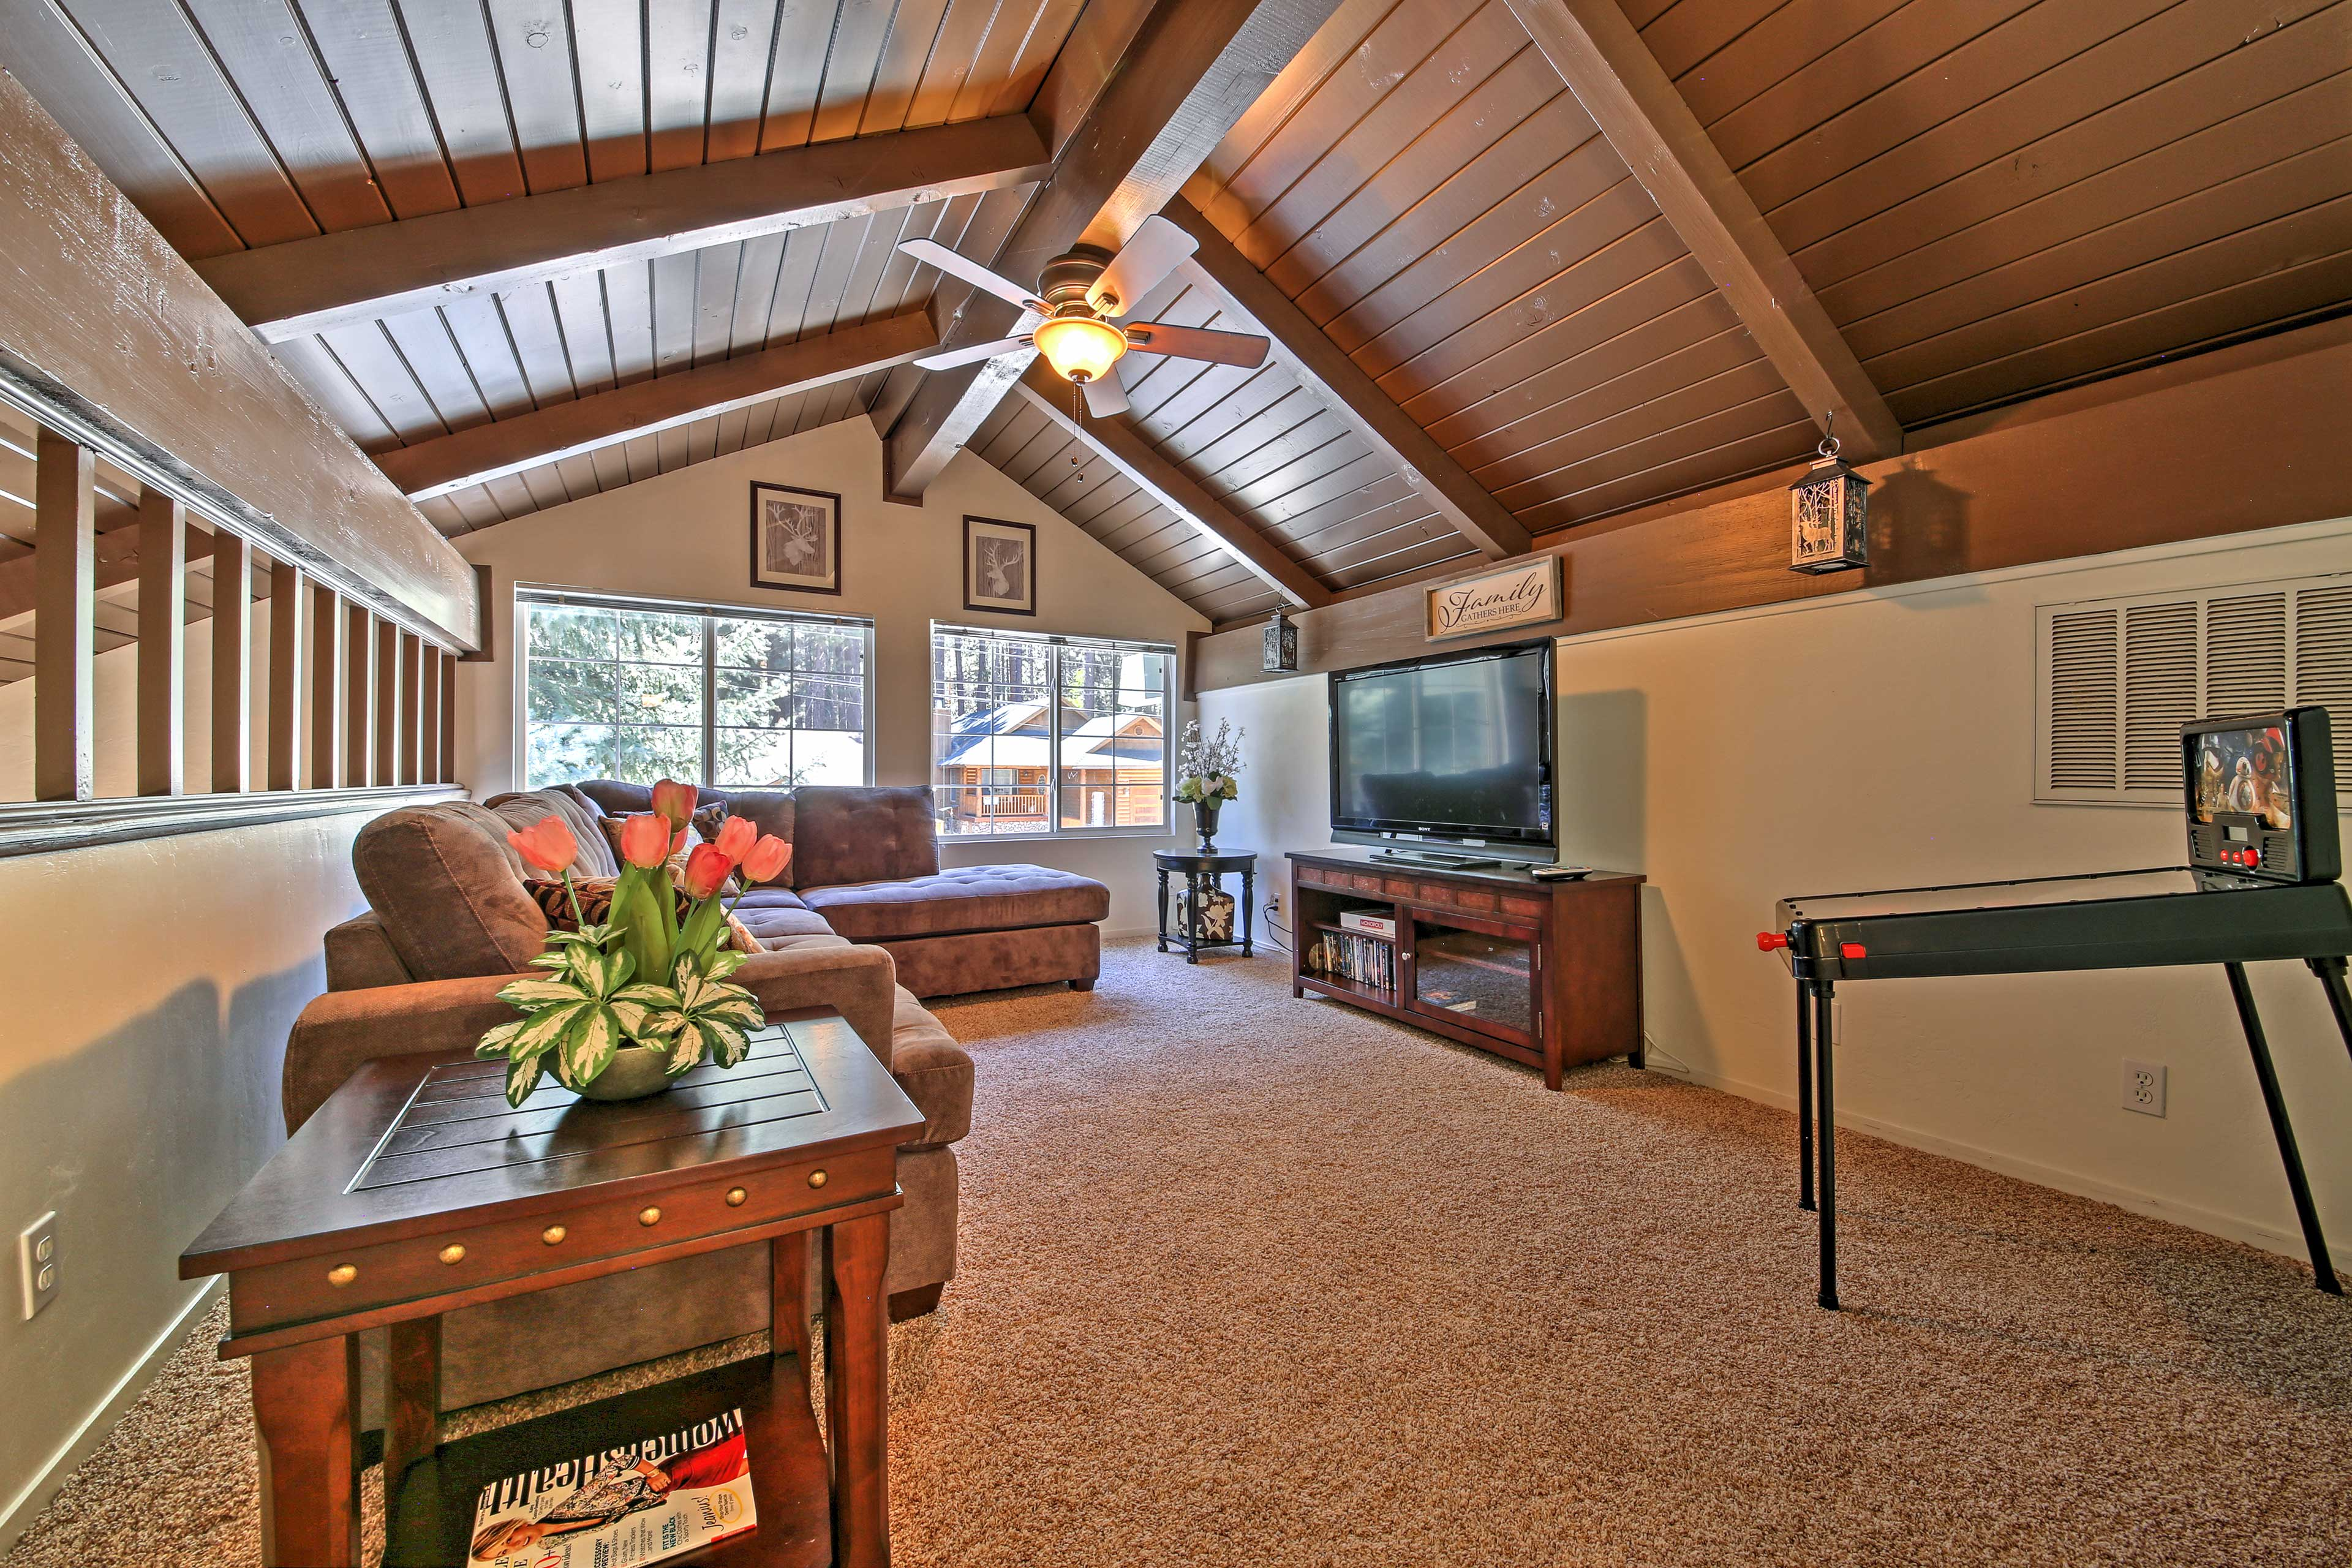 Host a family movie night in this spacious room!